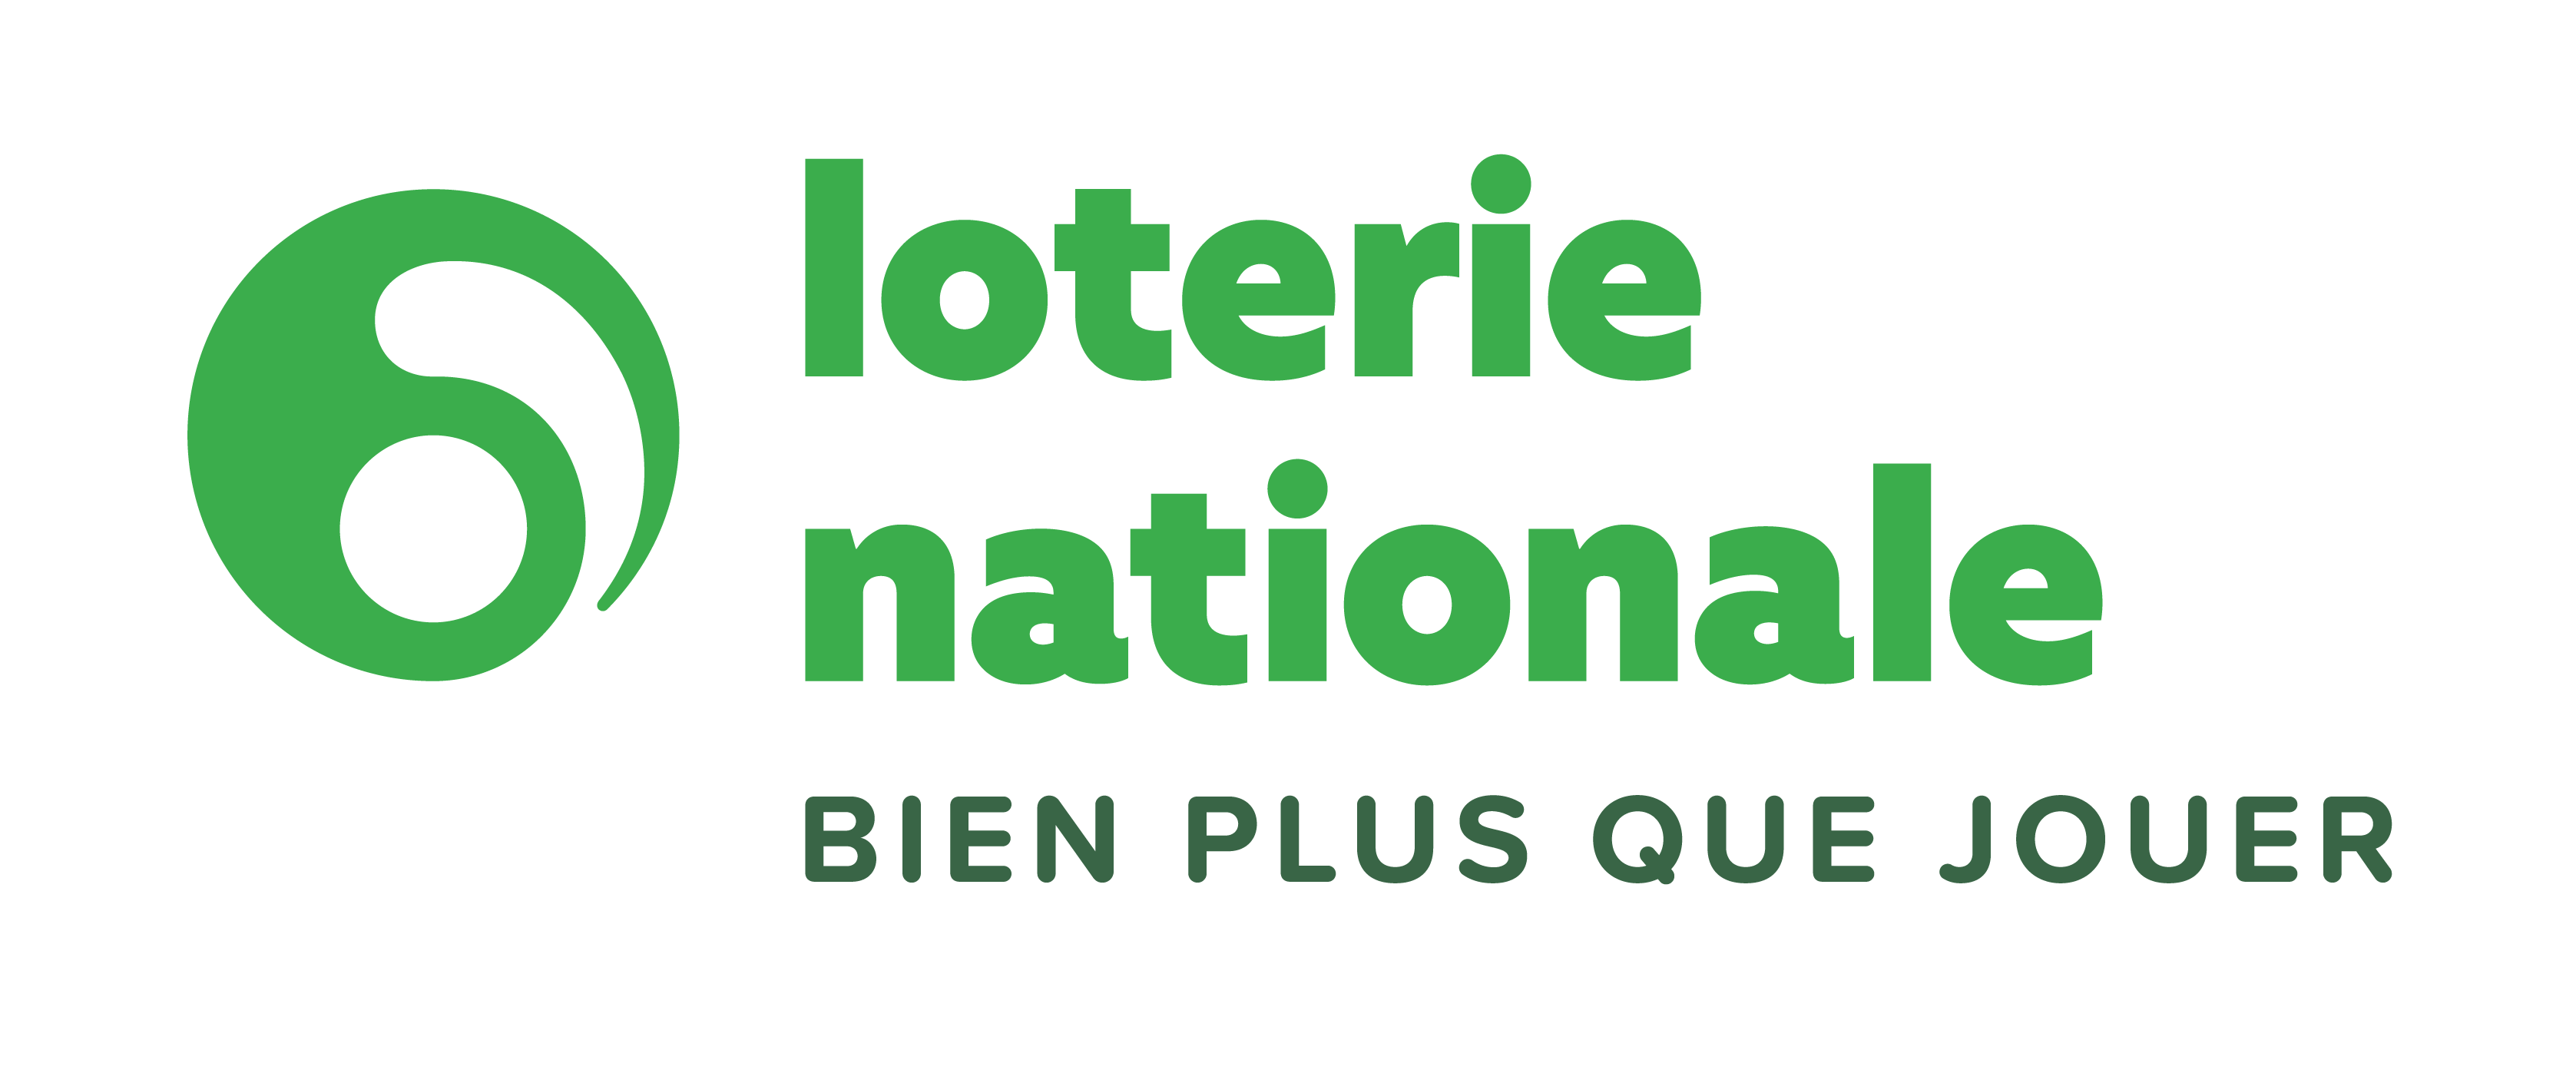 DEL Diffusion Logo Loterie Nationale 300px